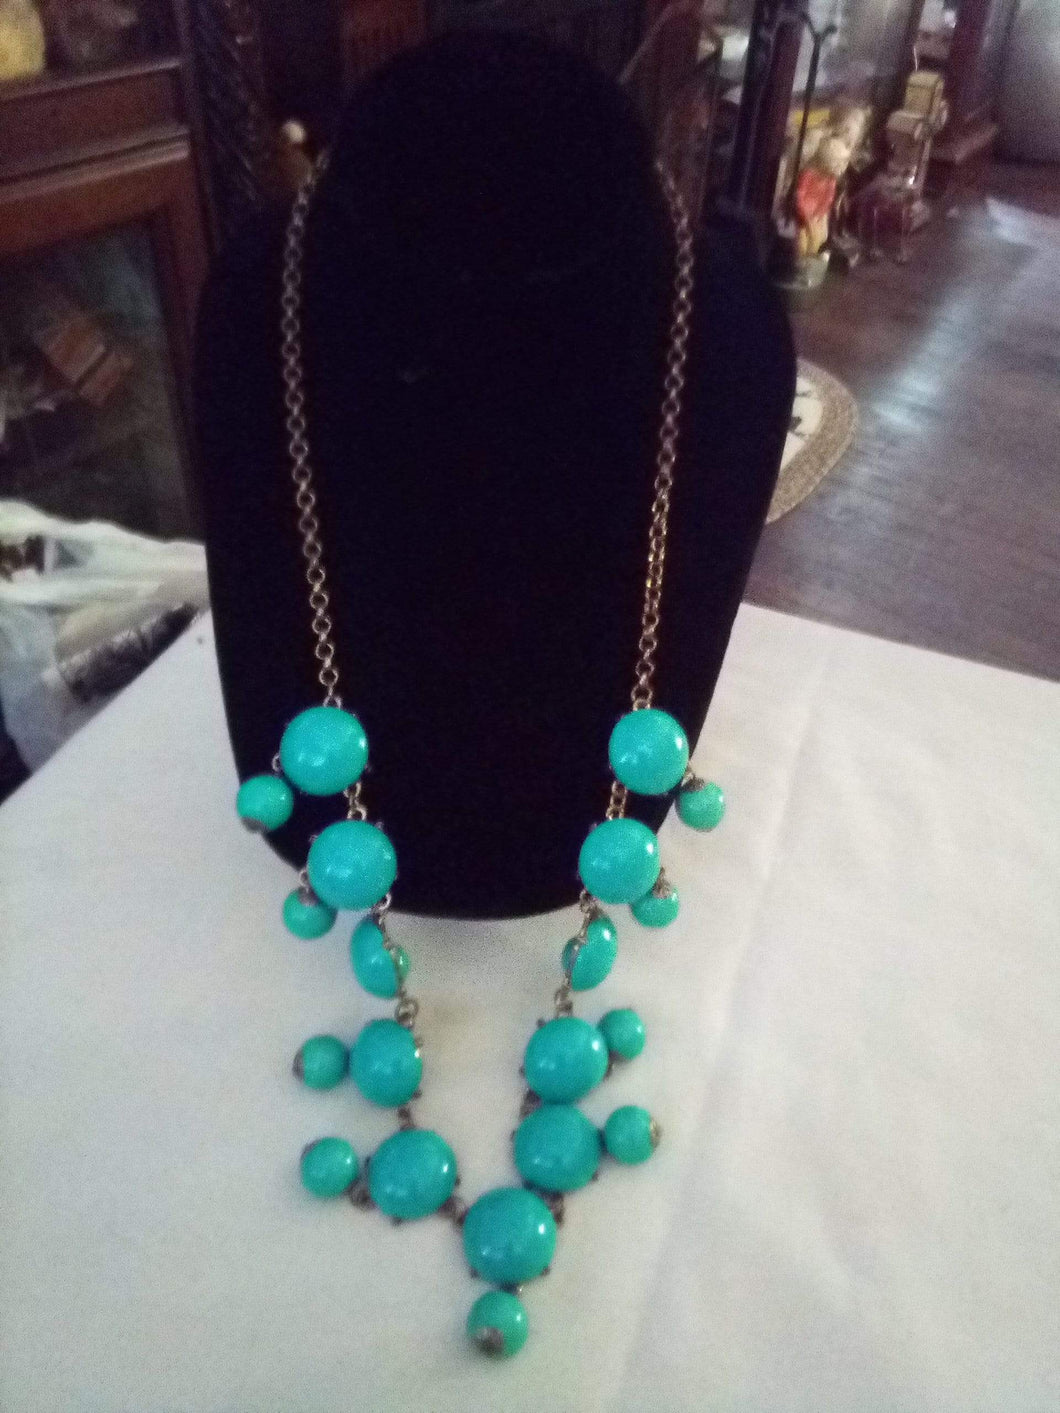 Dressy turquoise long necklace - B&P'sringsnthings